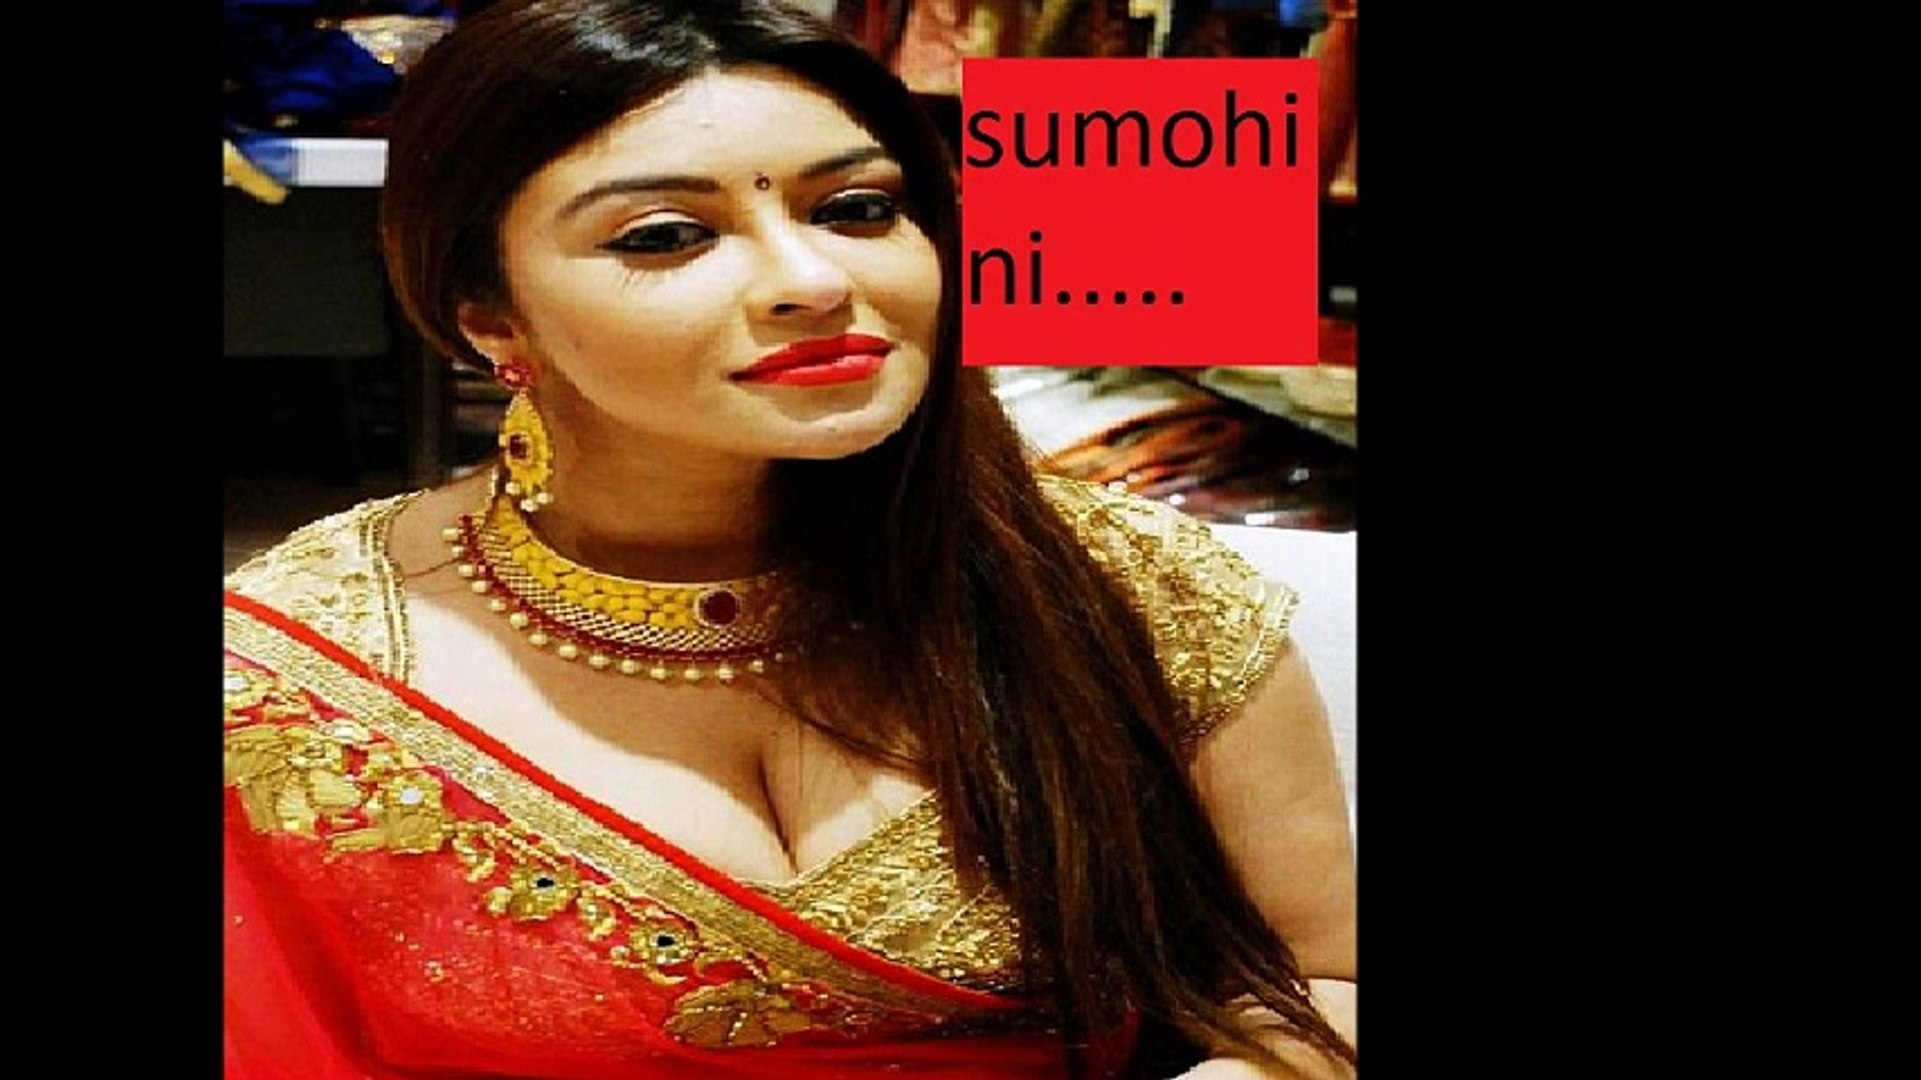 Dailymotion breaking news Late night adult movies slot  Savdhan India inspired Indian webseries